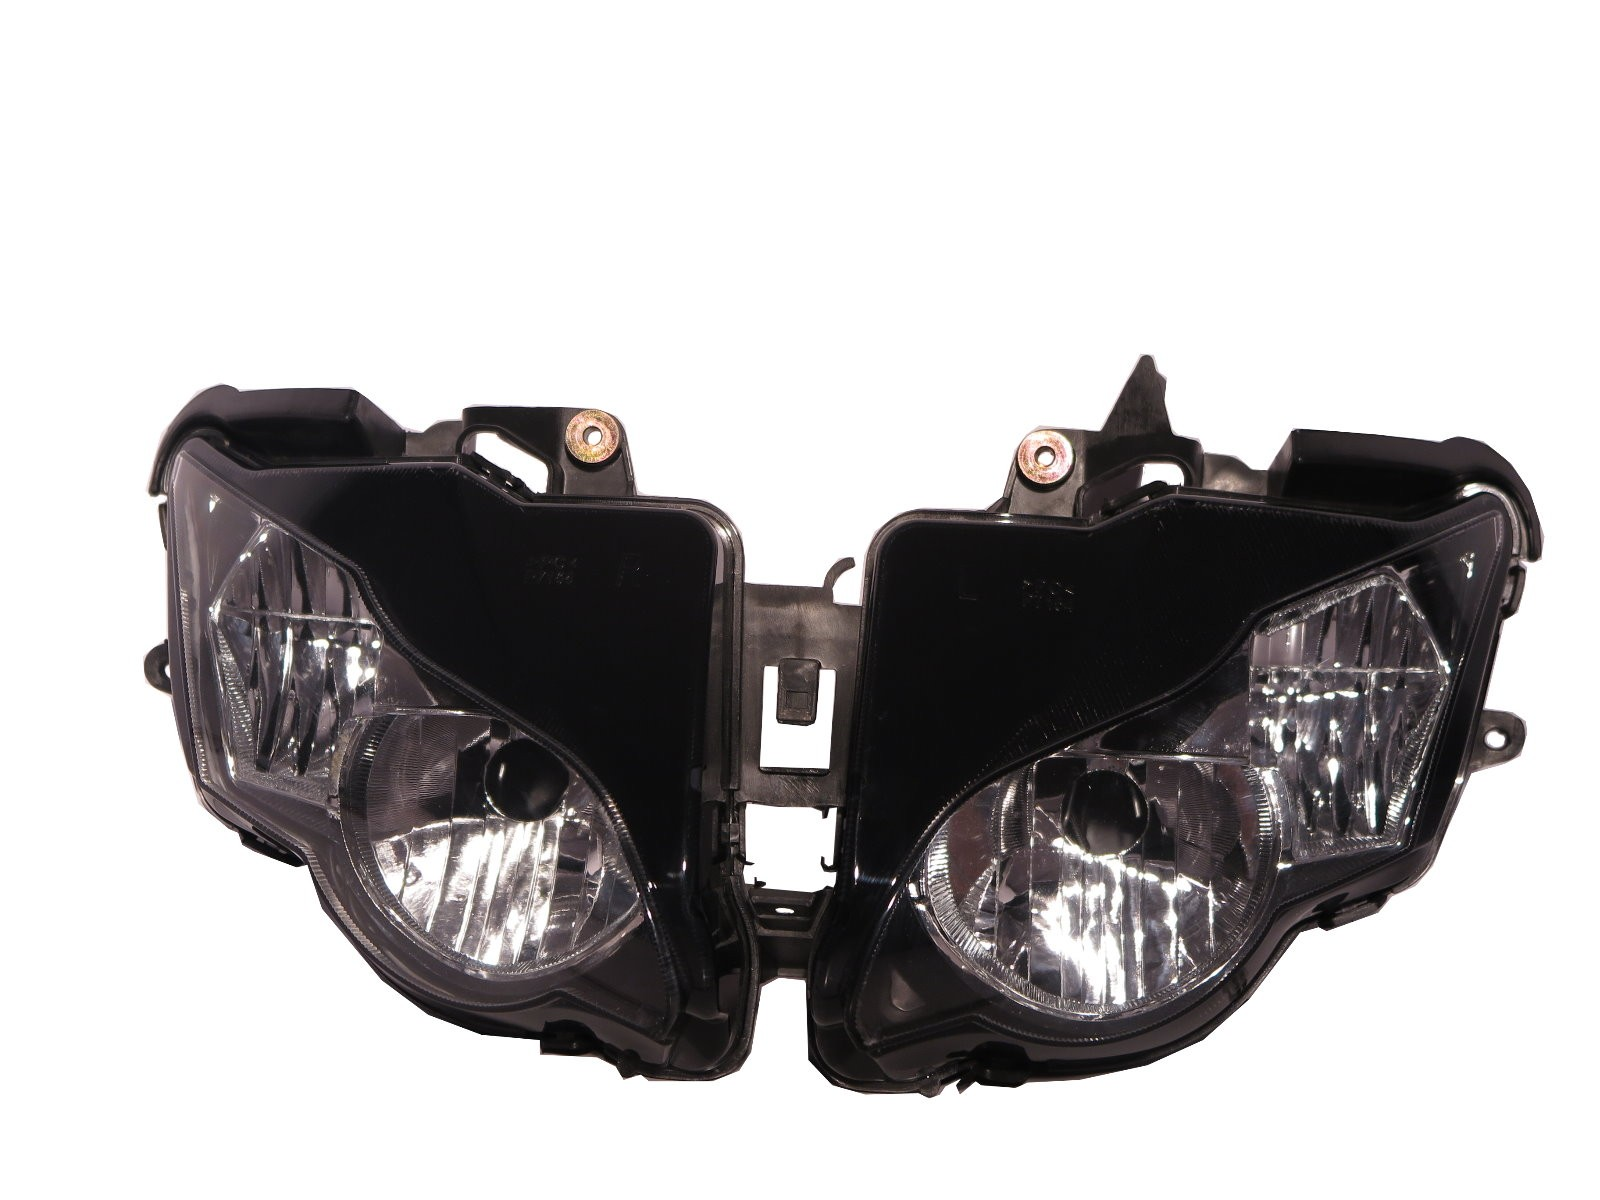 CrazyTheGod CBR1000RR 2008 2011 Motorcycles Crystal Headlight Headlamp Black for Honda Motor